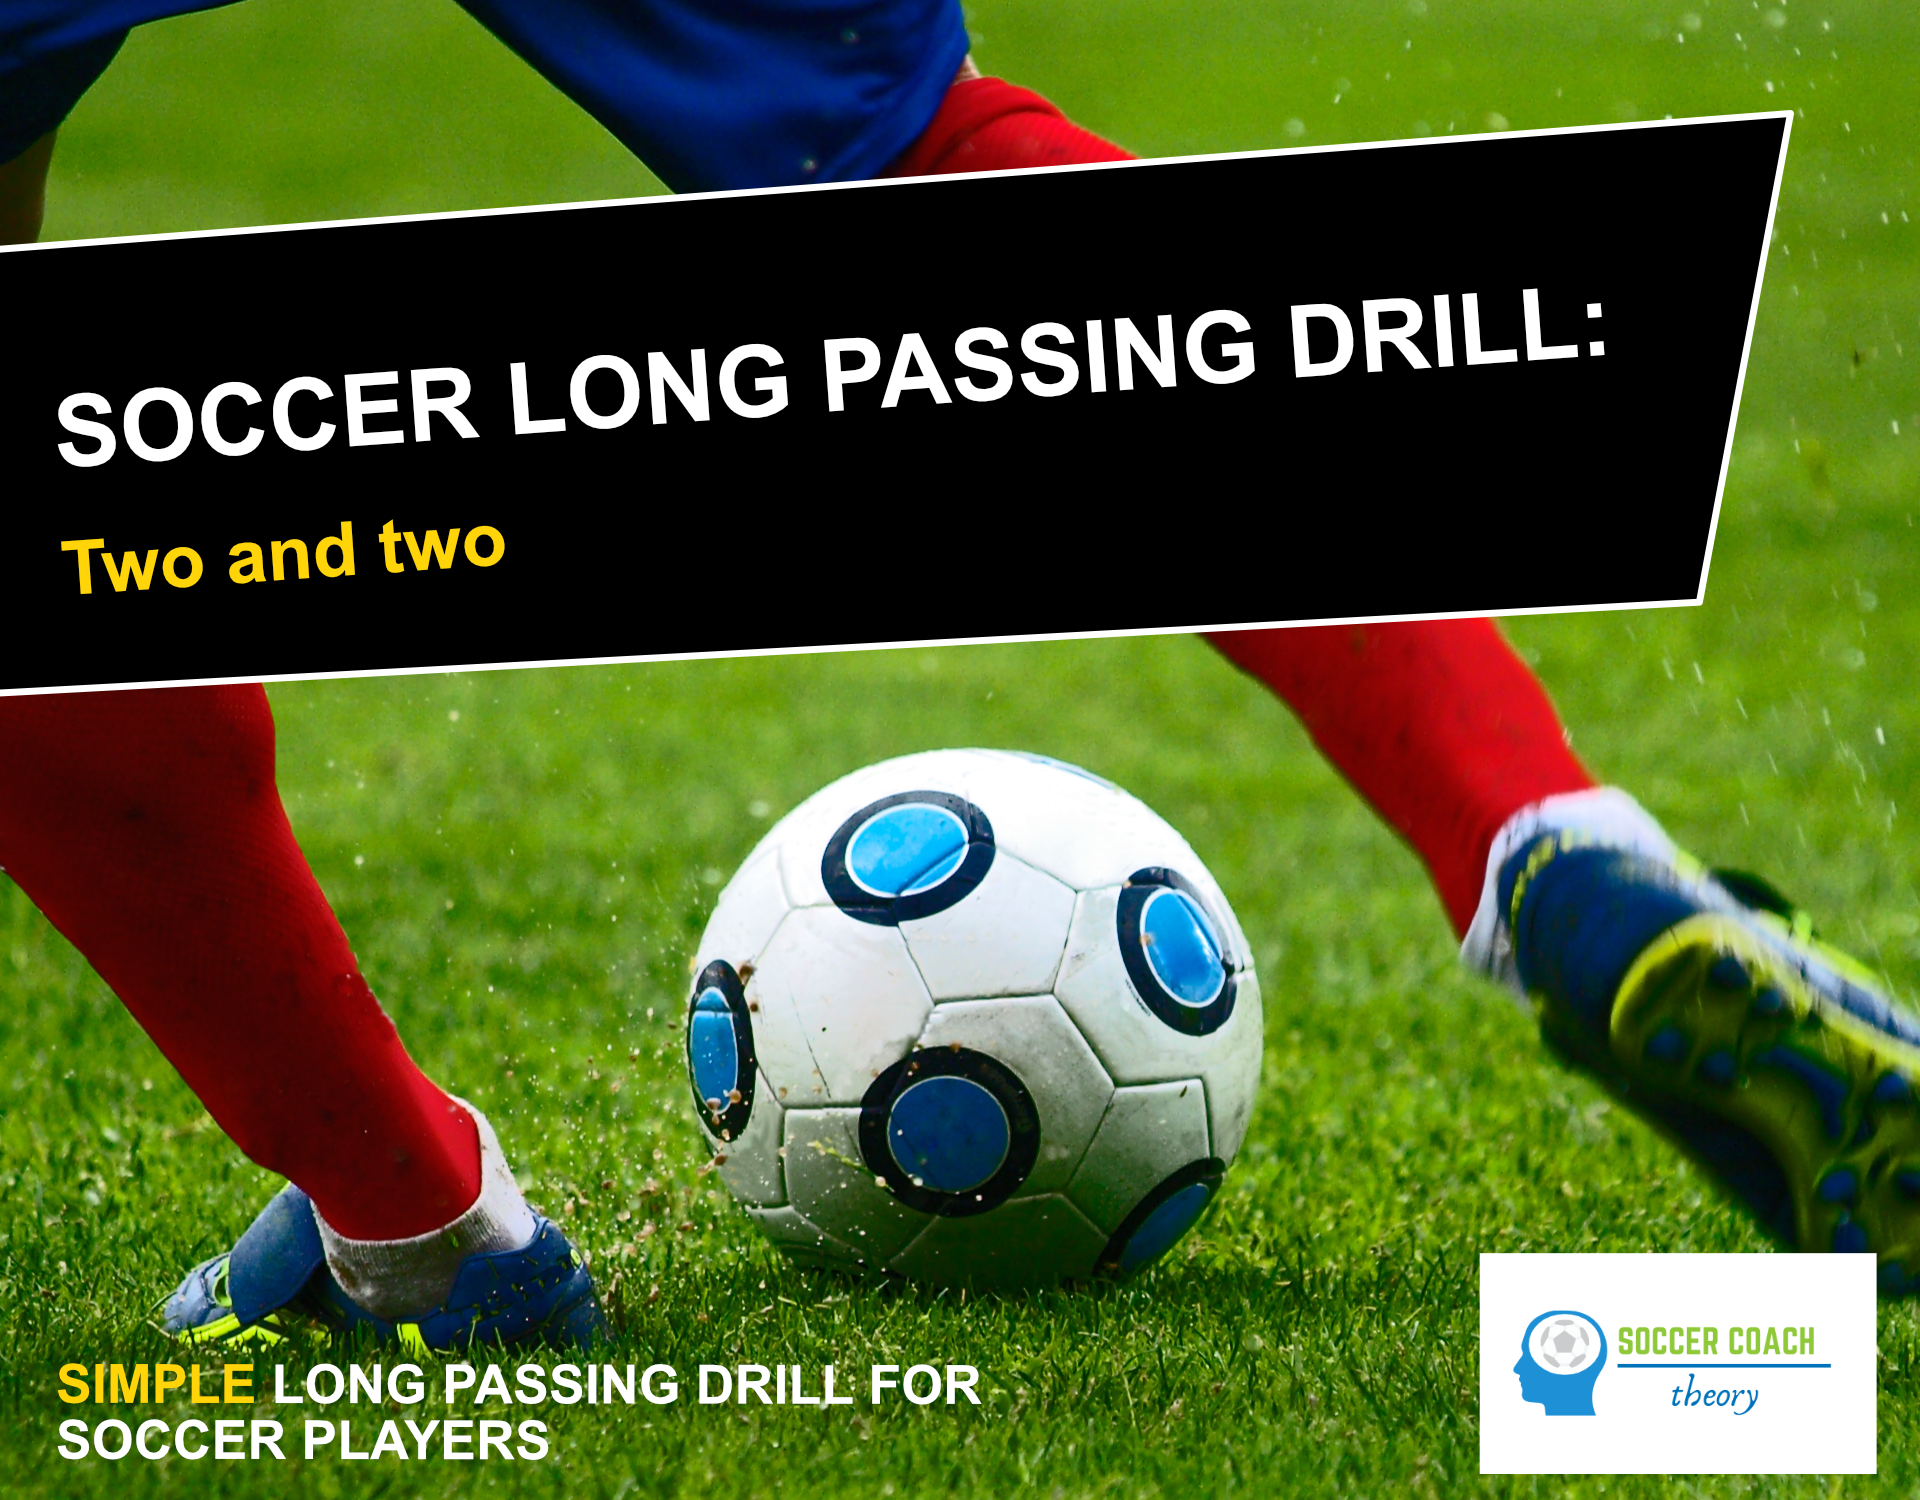 Soccer long passing drill cover